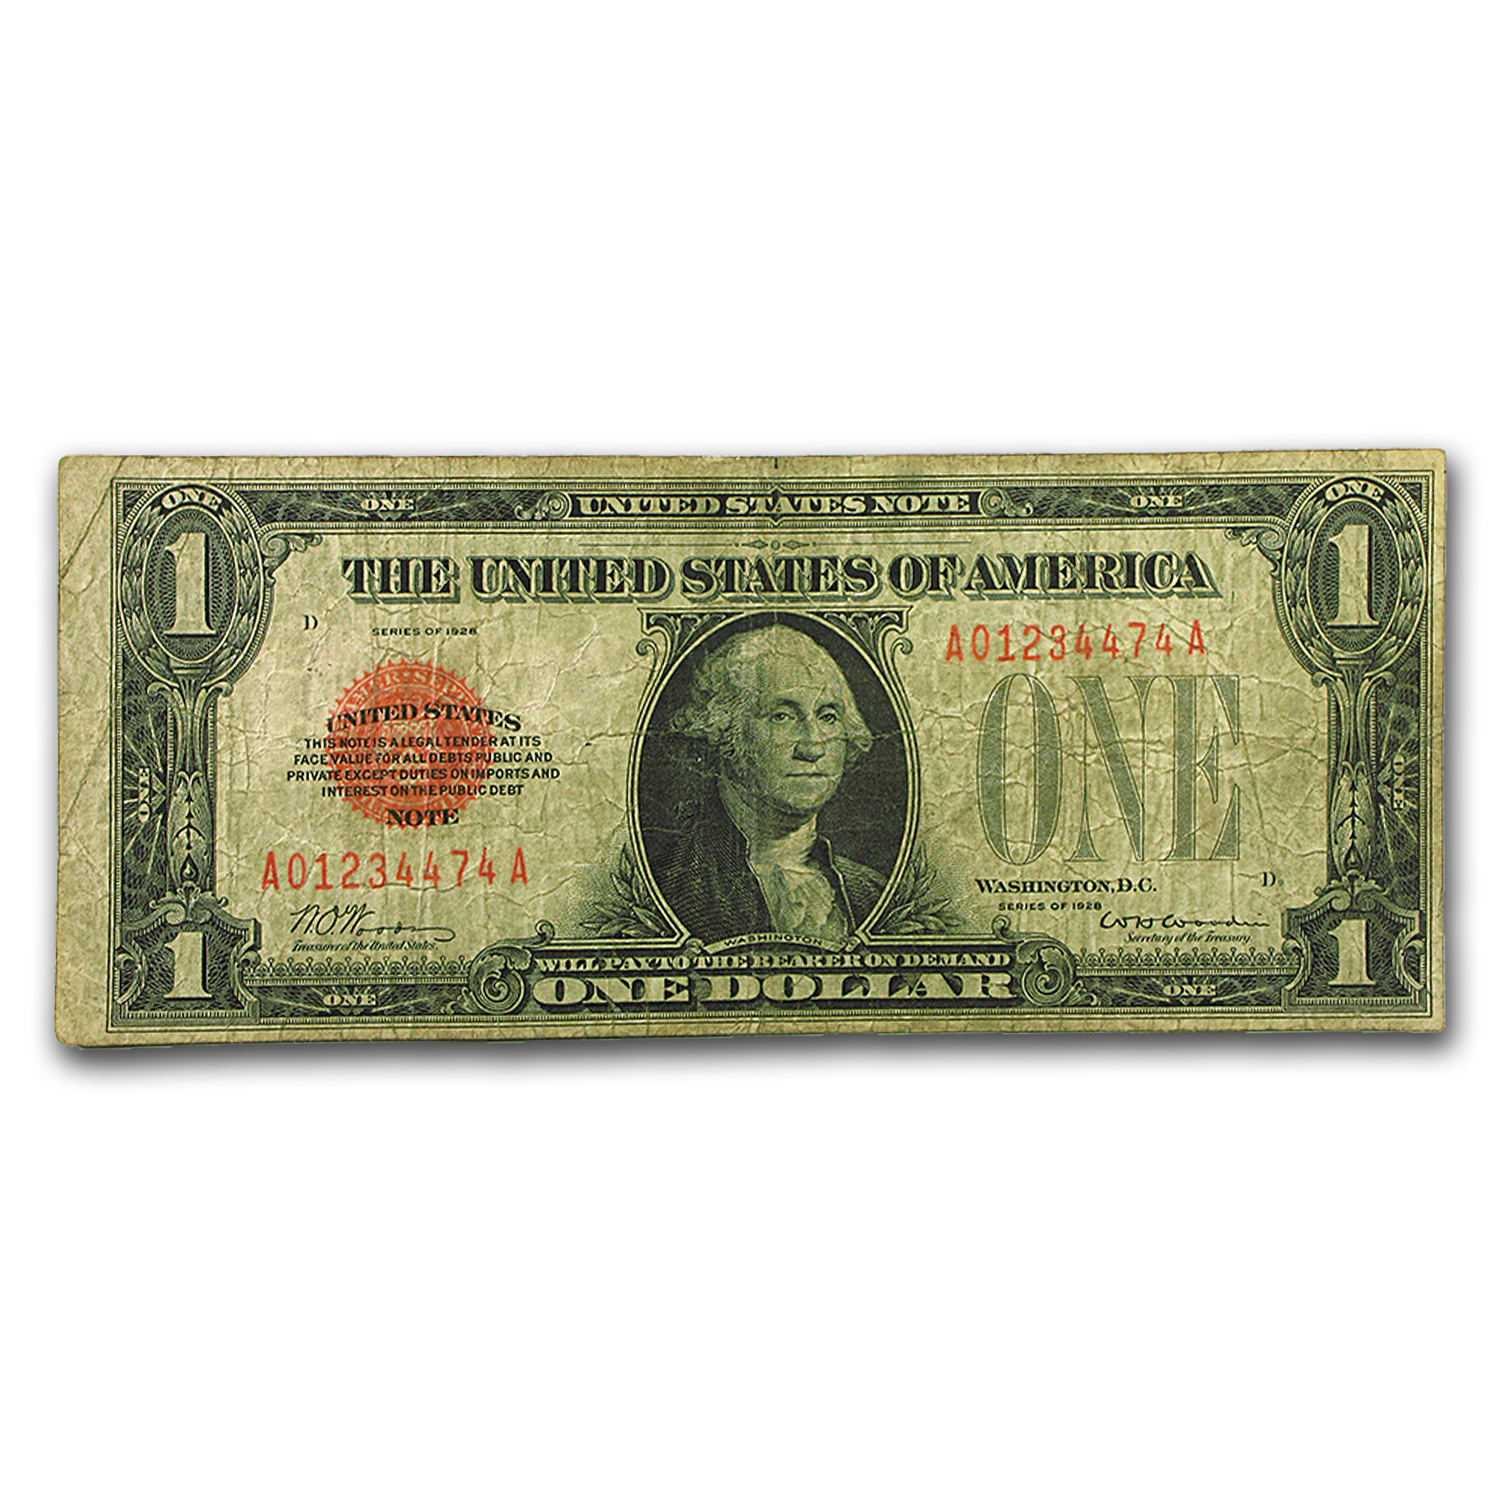 1928 $1.00 U.S. Note (Very Good)